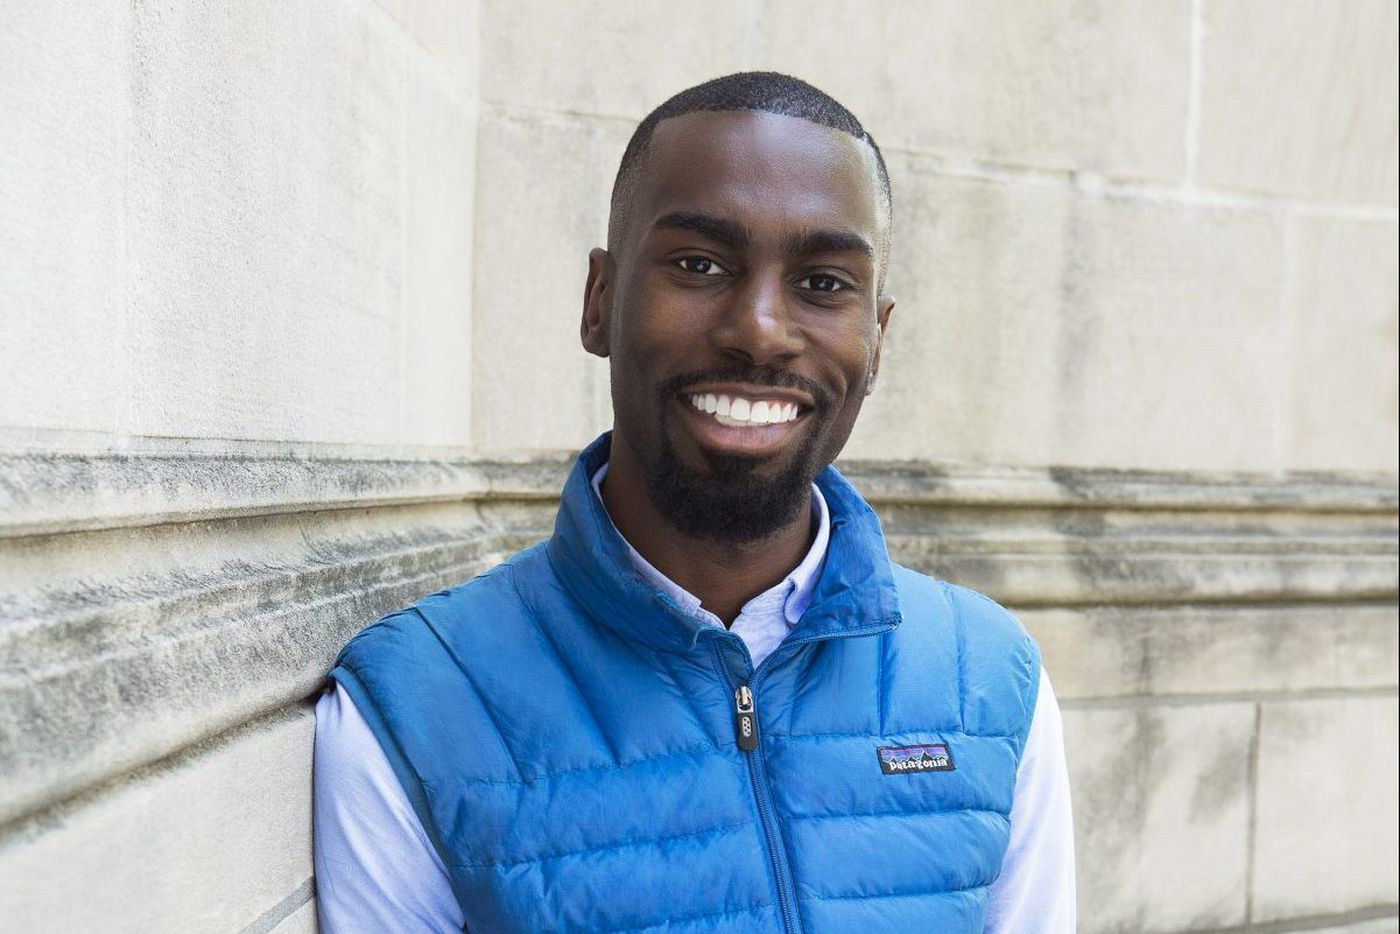 'There's an industry around the trauma of blackness': Q&A with #BlackLivesMatter Activist DeRay Mckesson ahead of Philly book tour visit